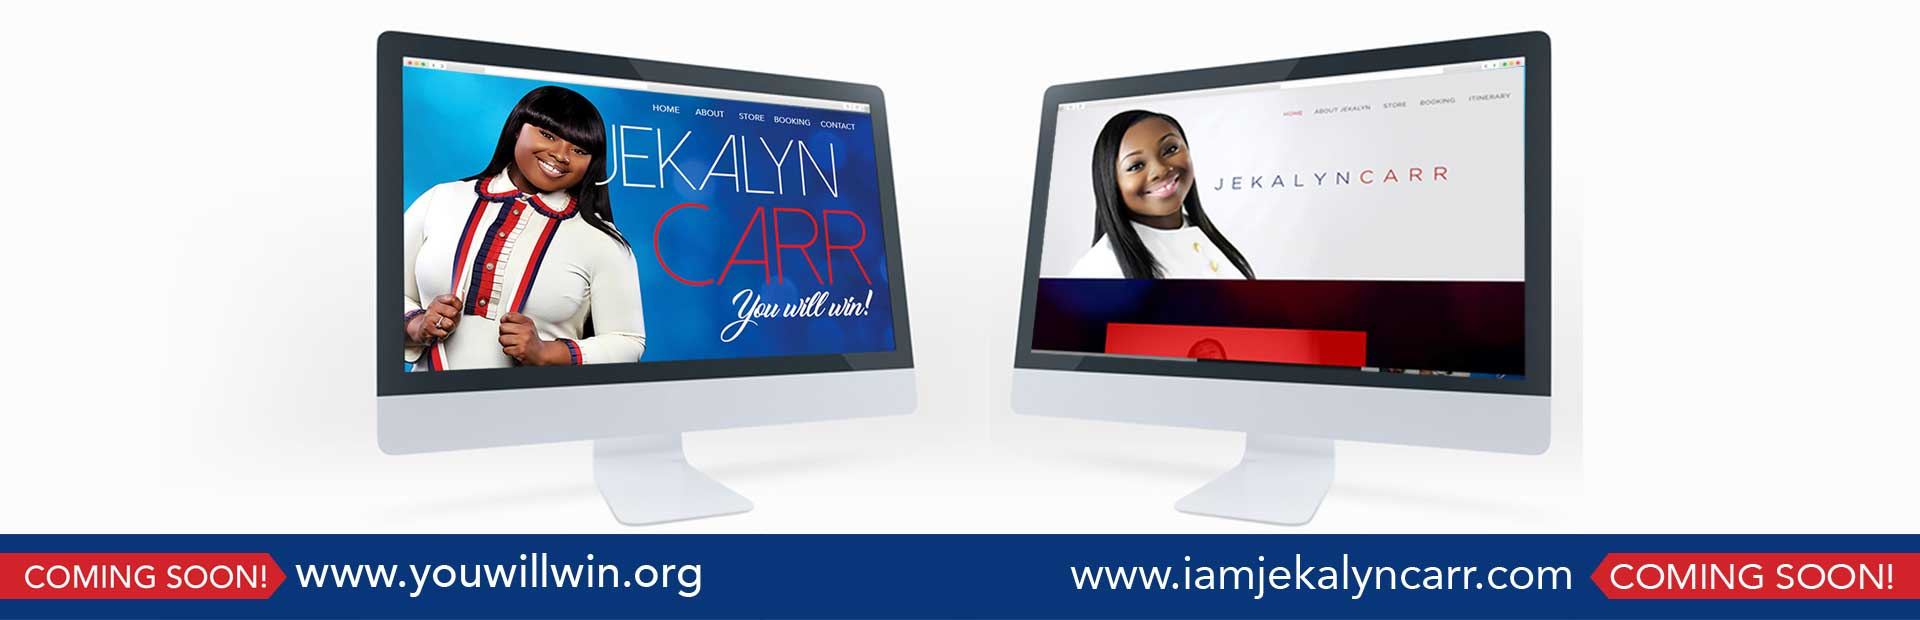 Jekalyn Carr's new websites are coming soon!